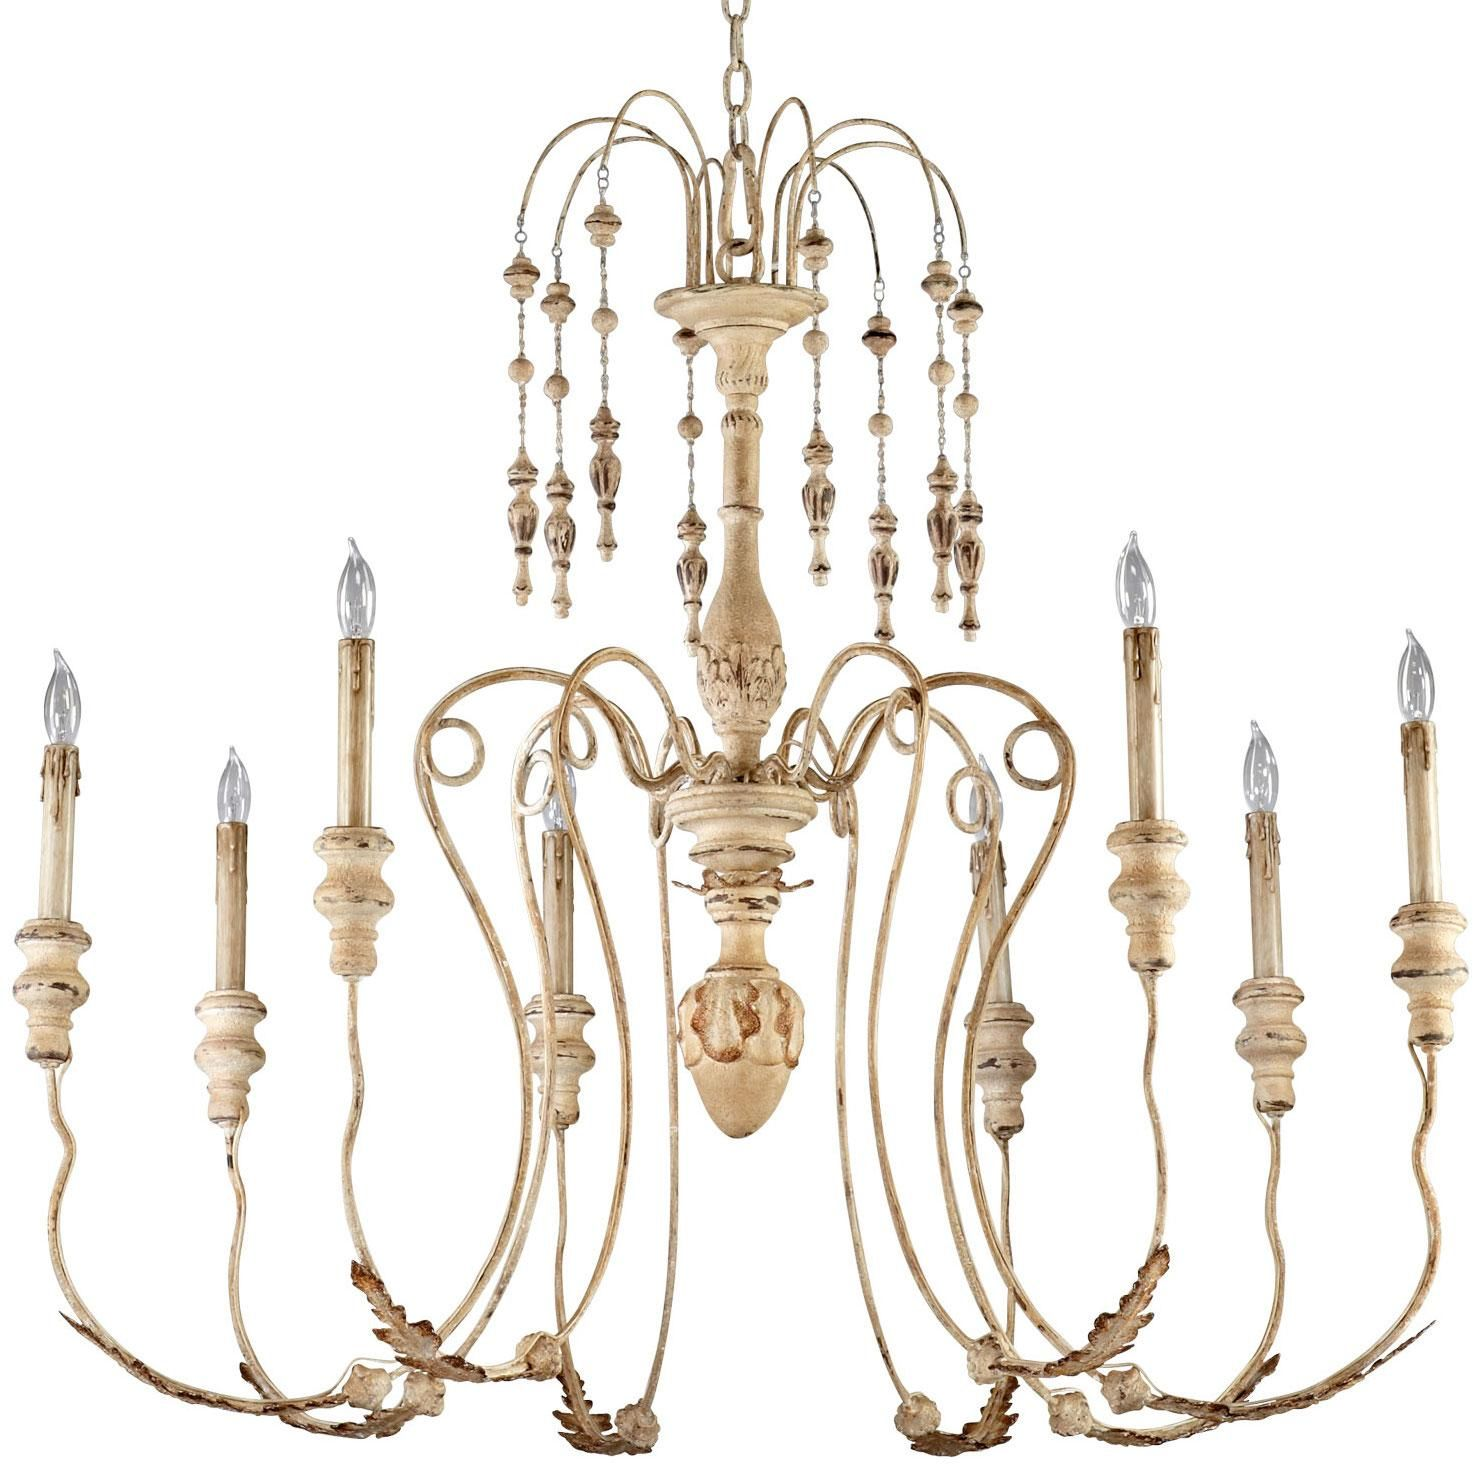 Maison 8 light chandelier by Cyan Design 37 5hx41 d $737